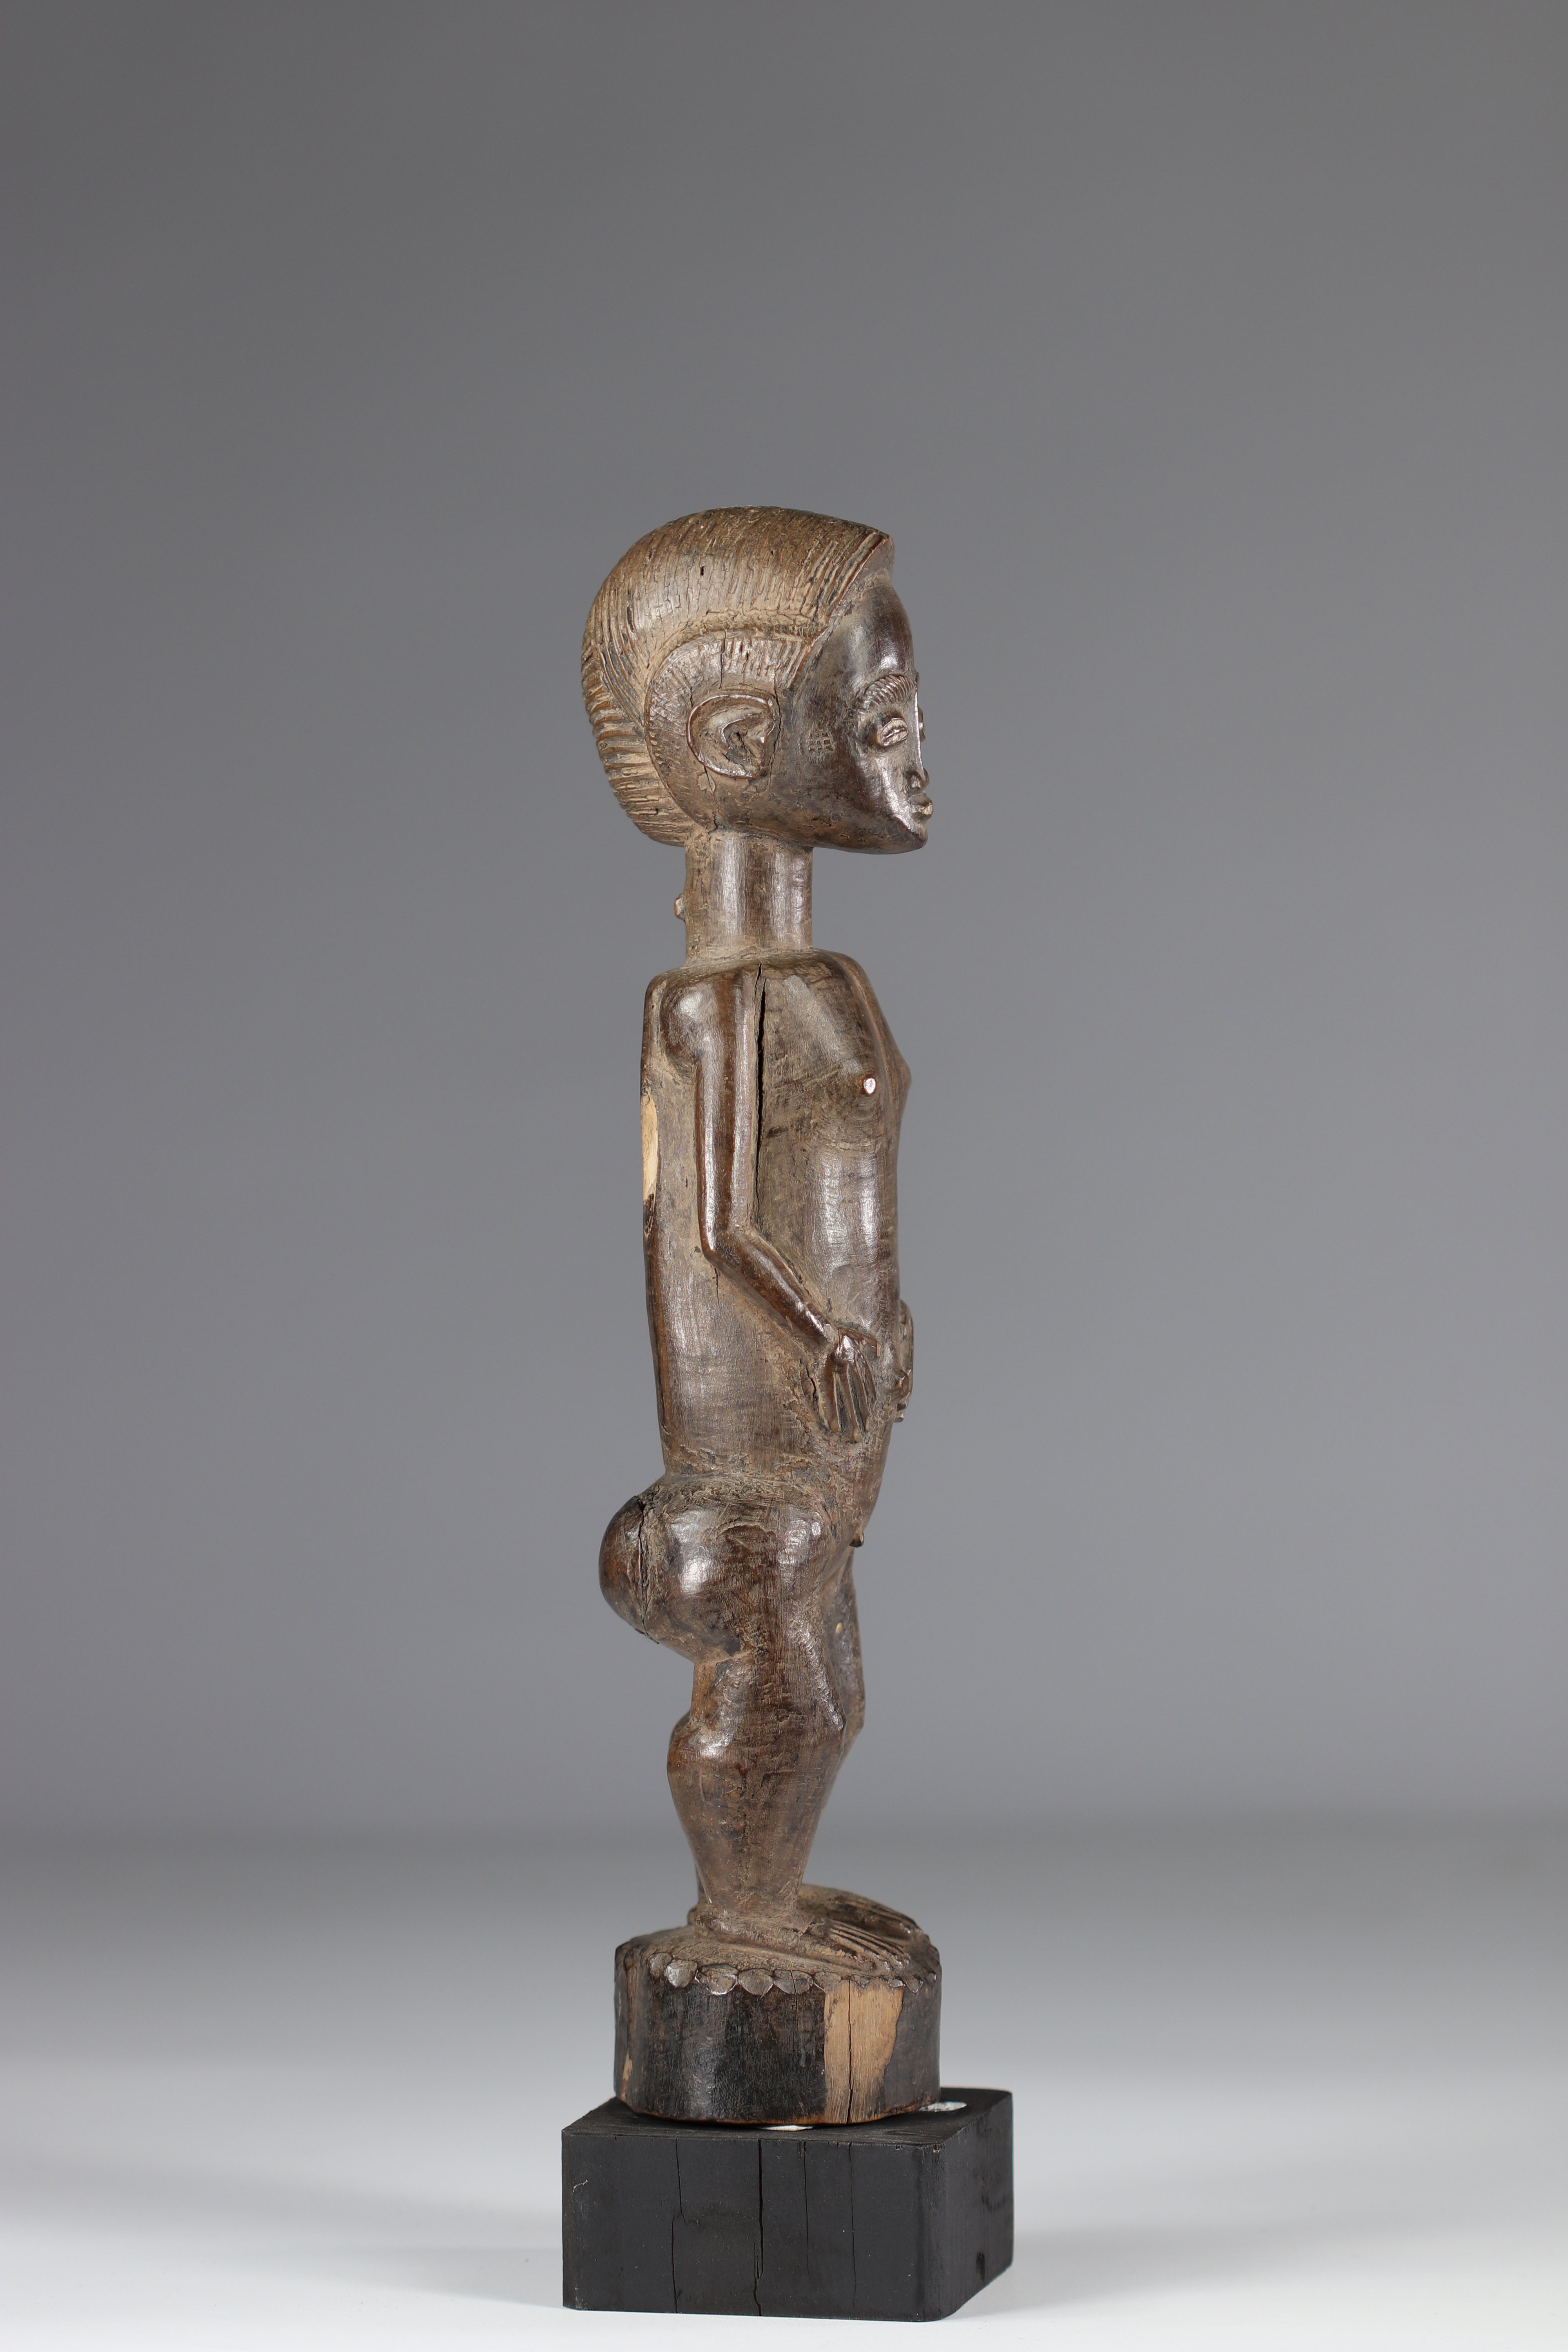 Baoule statuette in good condition mid 20th century - Image 4 of 5